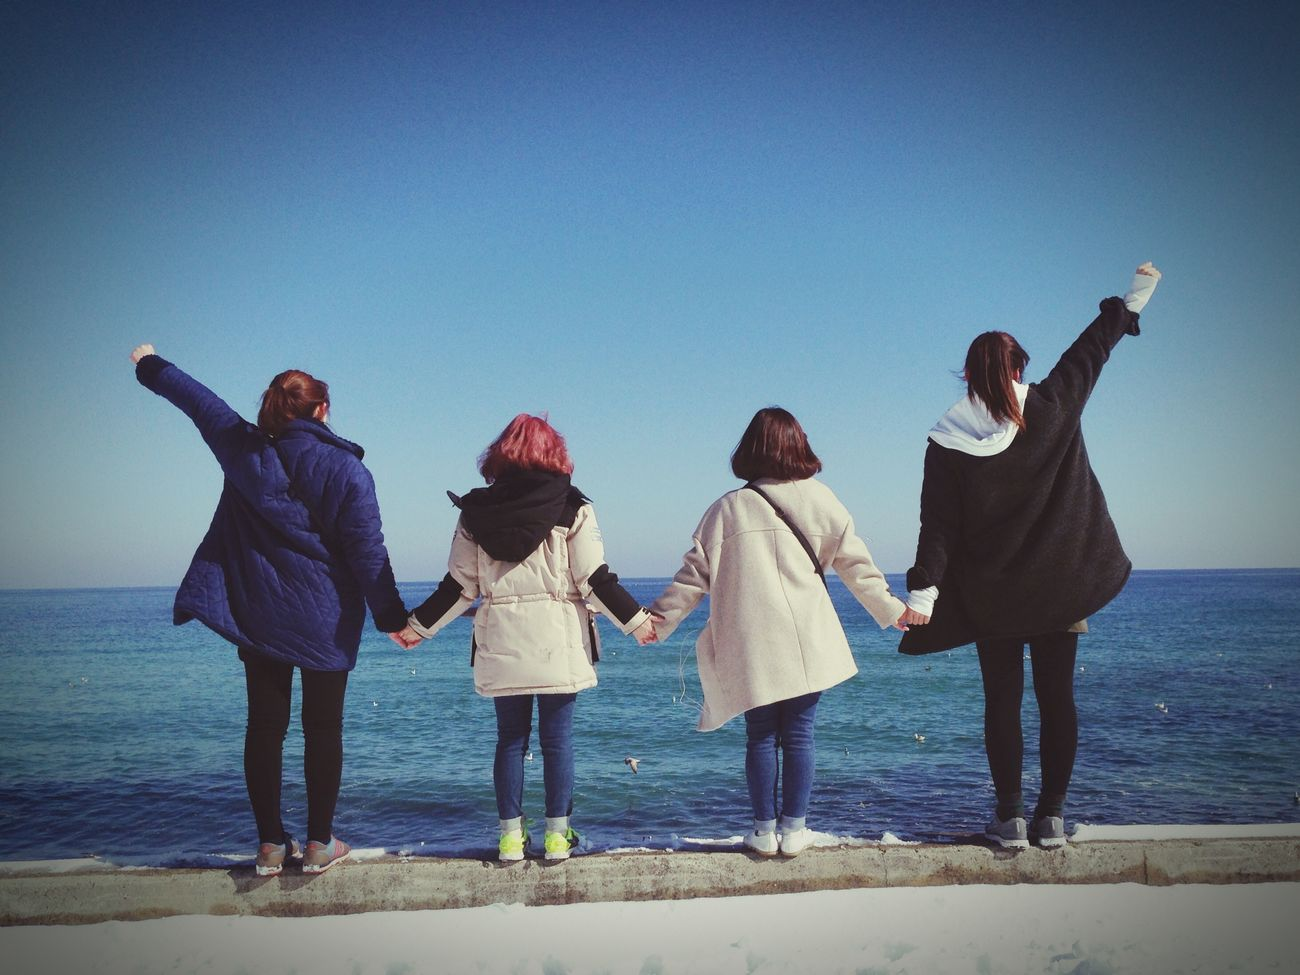 Friends ❤ Sea And Sky Good Times With Good Friends Winter Sea Trip Photo Korea Sokcho Beach